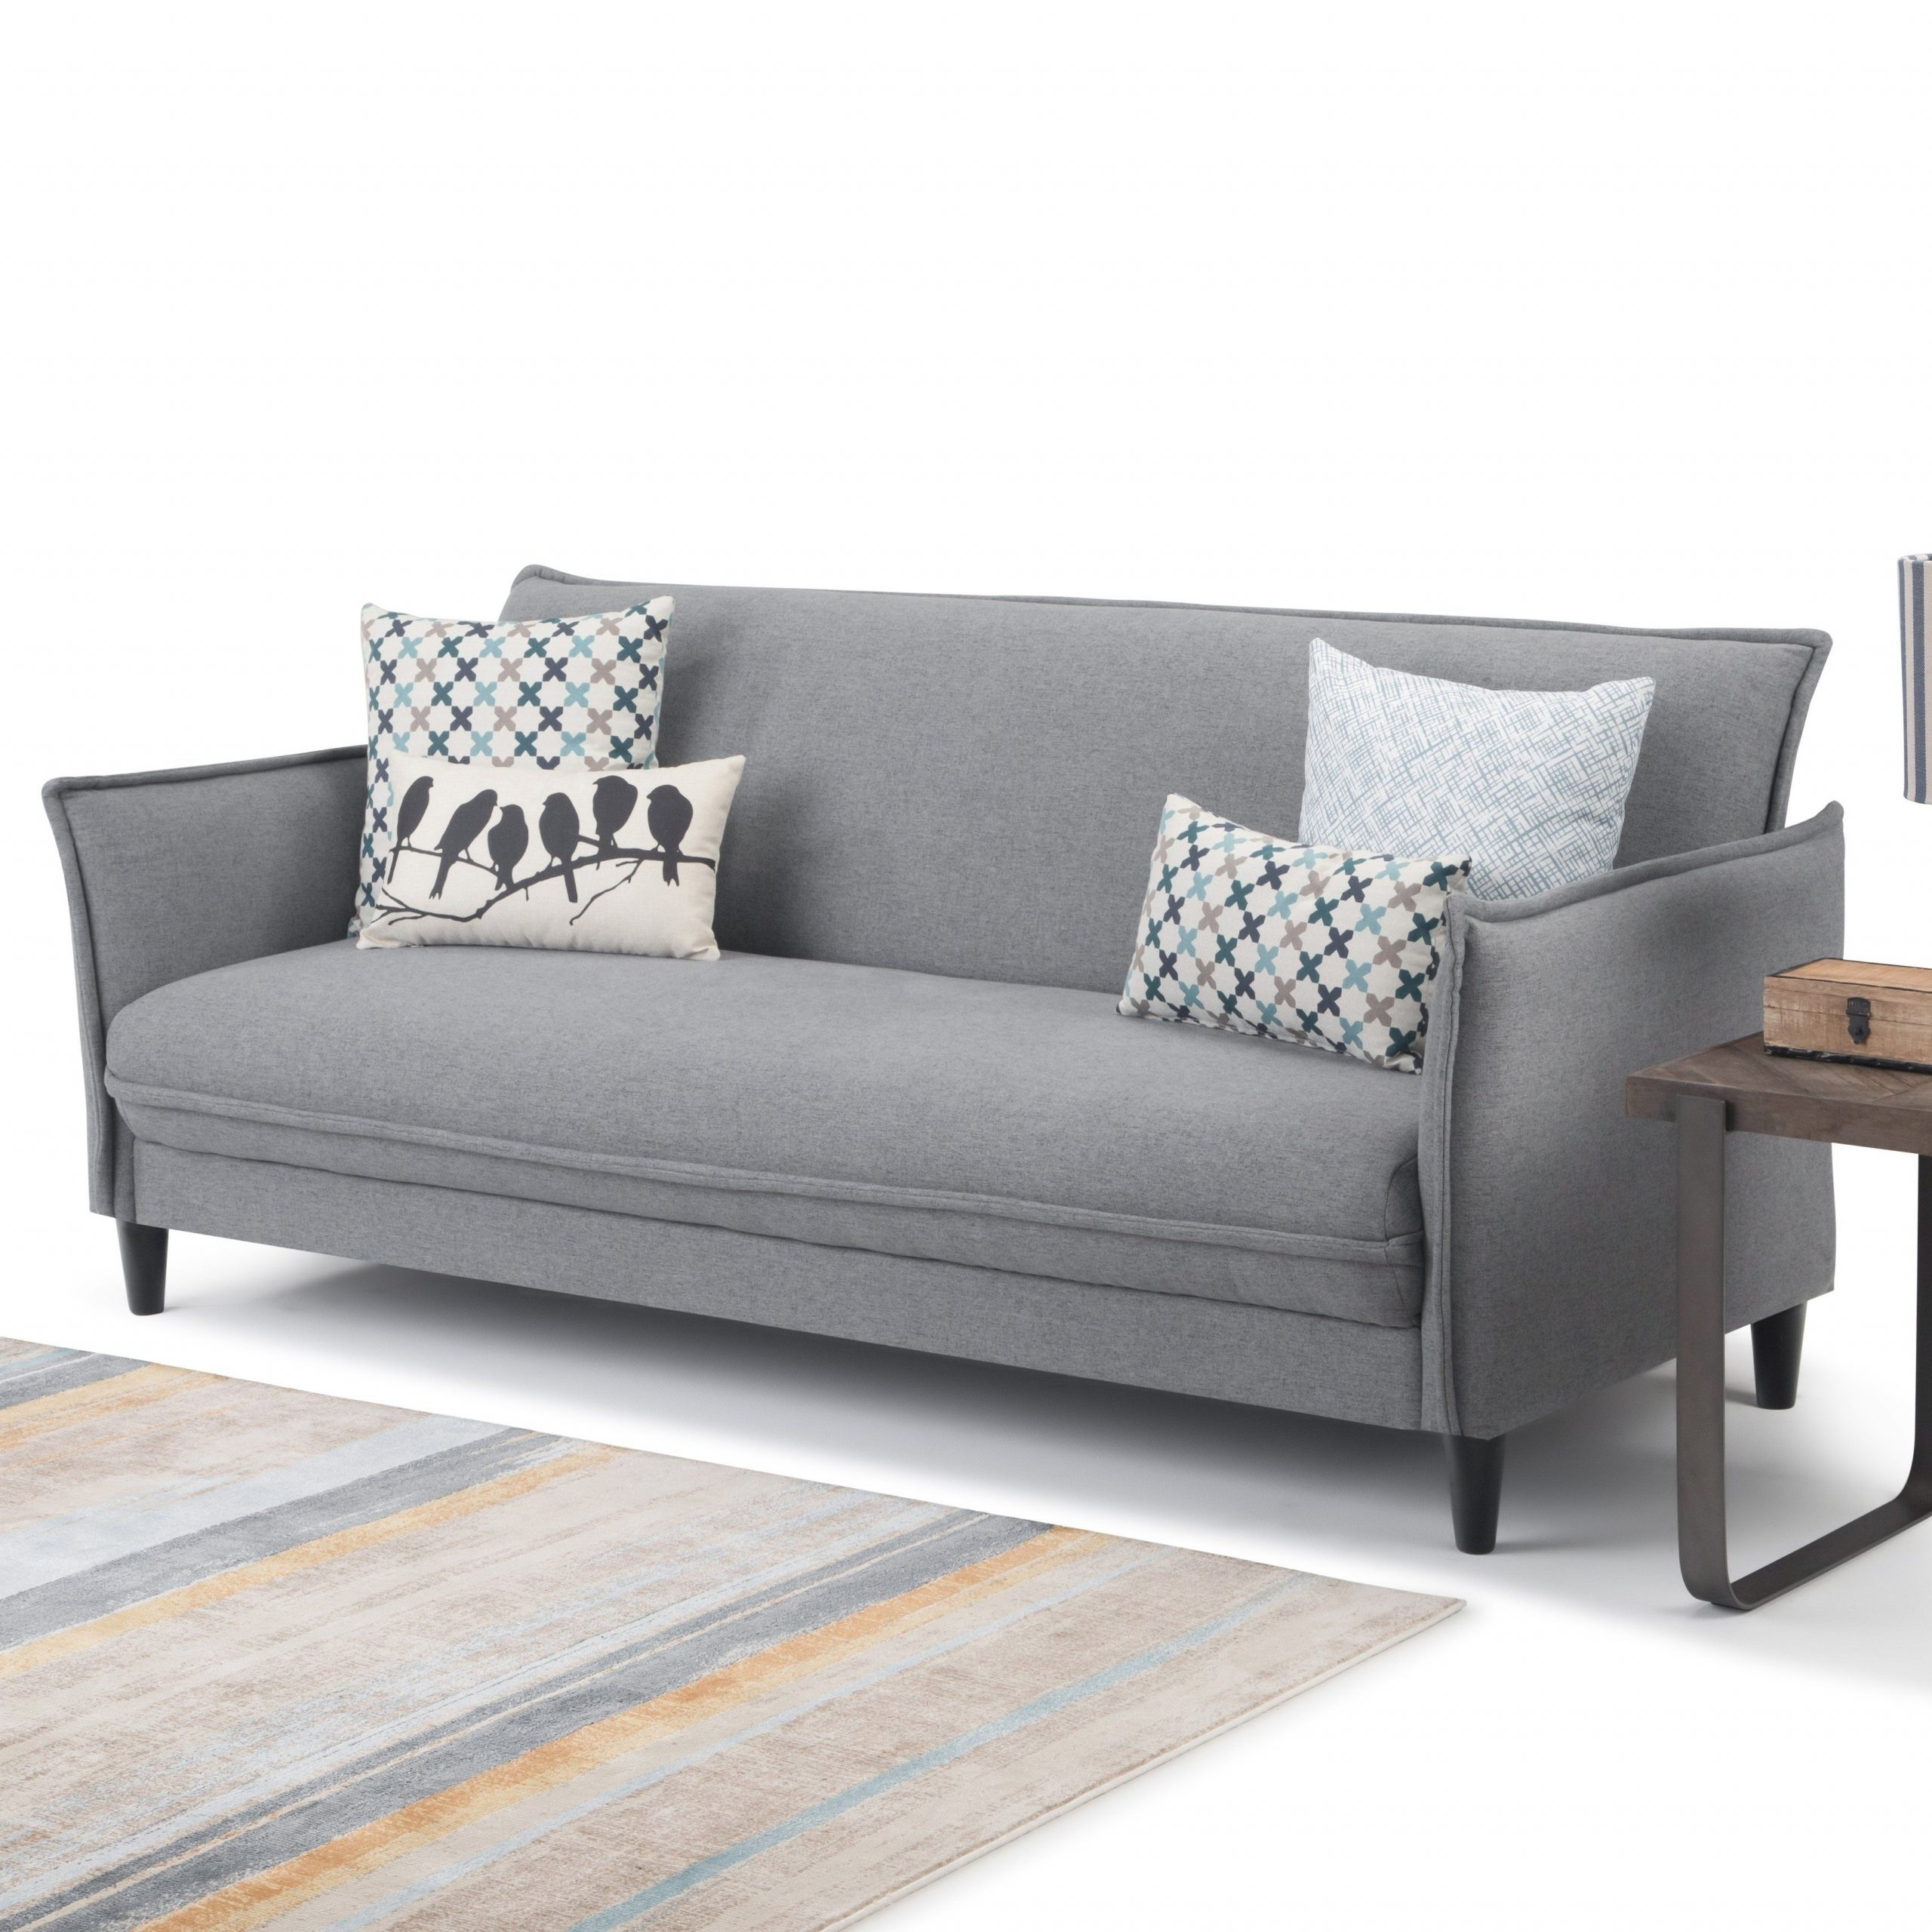 Current Gneiss Modern Linen Sectional Sofas Slate Gray With Wyndenhall Kichler Contemporary 81 Inch Wide Sofa Bed In (View 2 of 20)